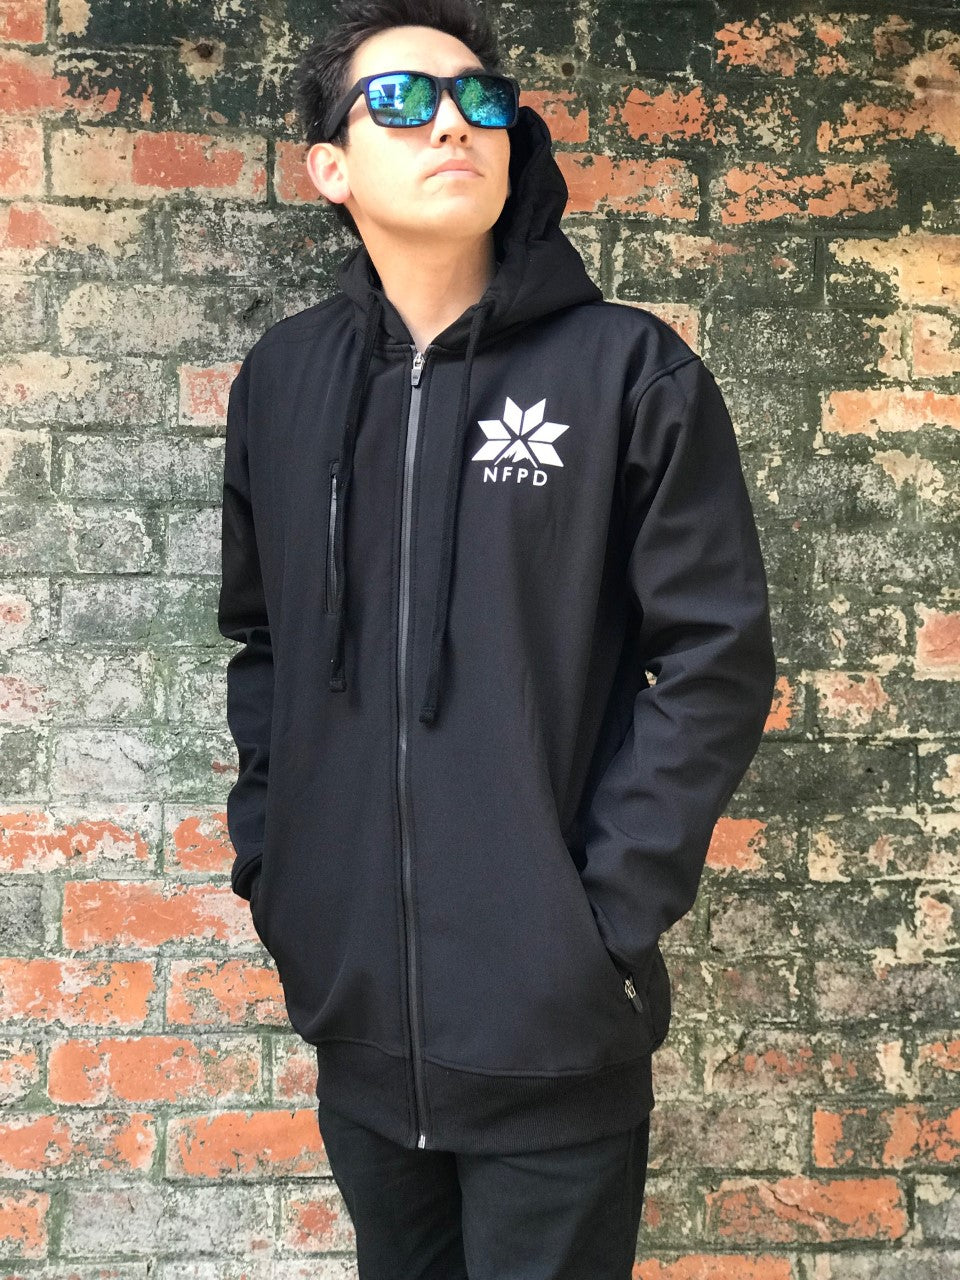 10K WATERPROOF Tall Black Softshell Jacket - Unisex